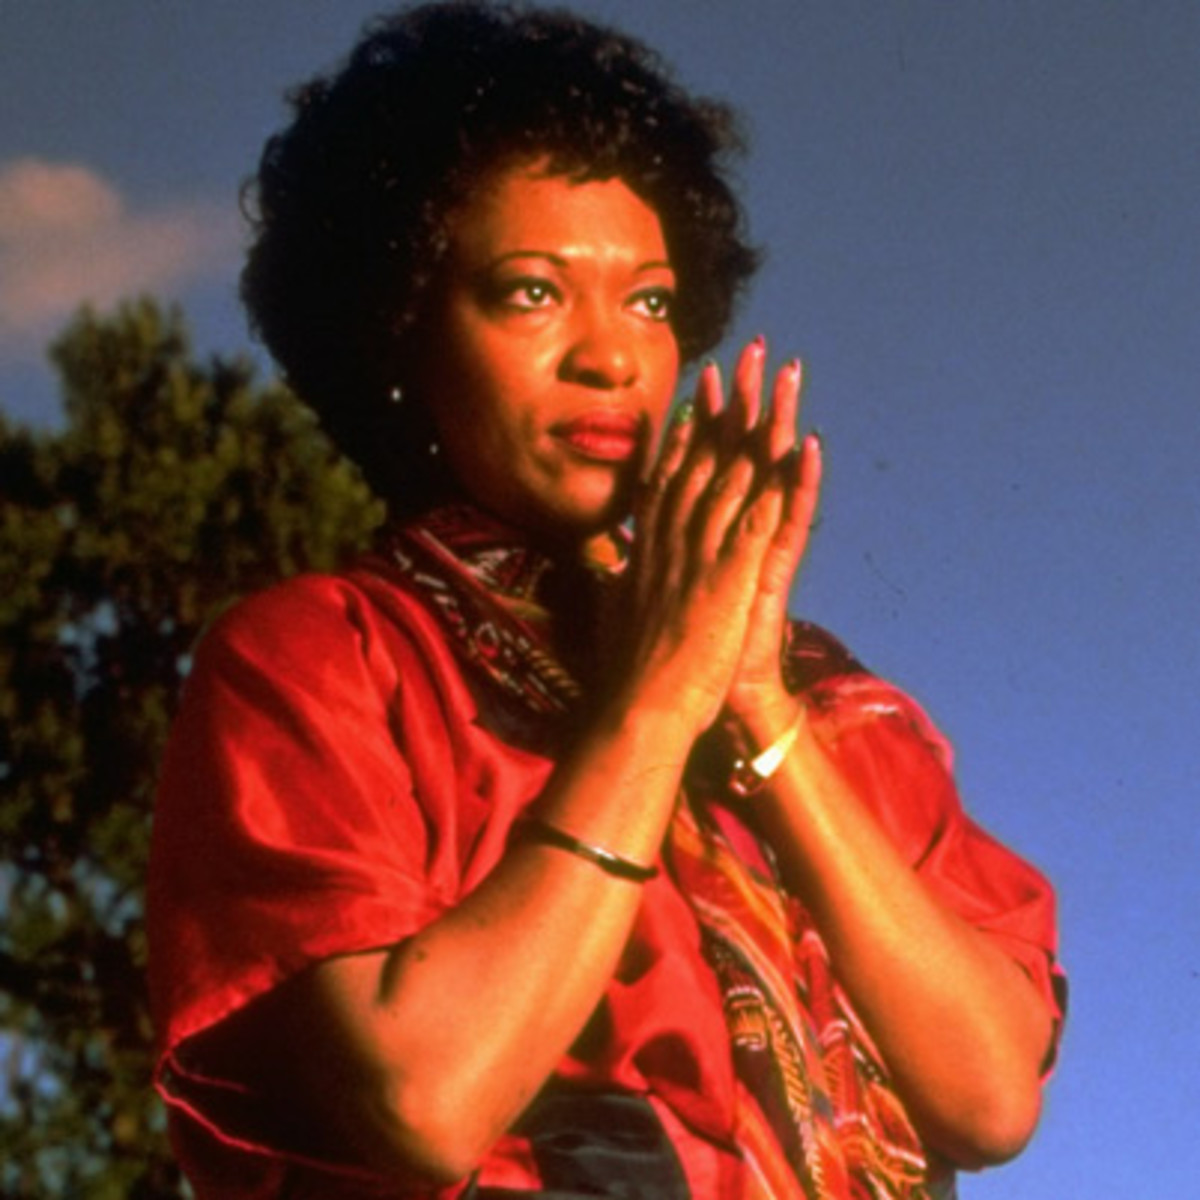 daystar by rita dove Find album reviews, stream songs, credits and award information for rita dove & amnon wolman: thomas and beulah - cynthia haymon, rita dove, ursula oppens, amnon wolman on allmusic - 2002 - thomas and beulah is amnon wolman's most&hellip.